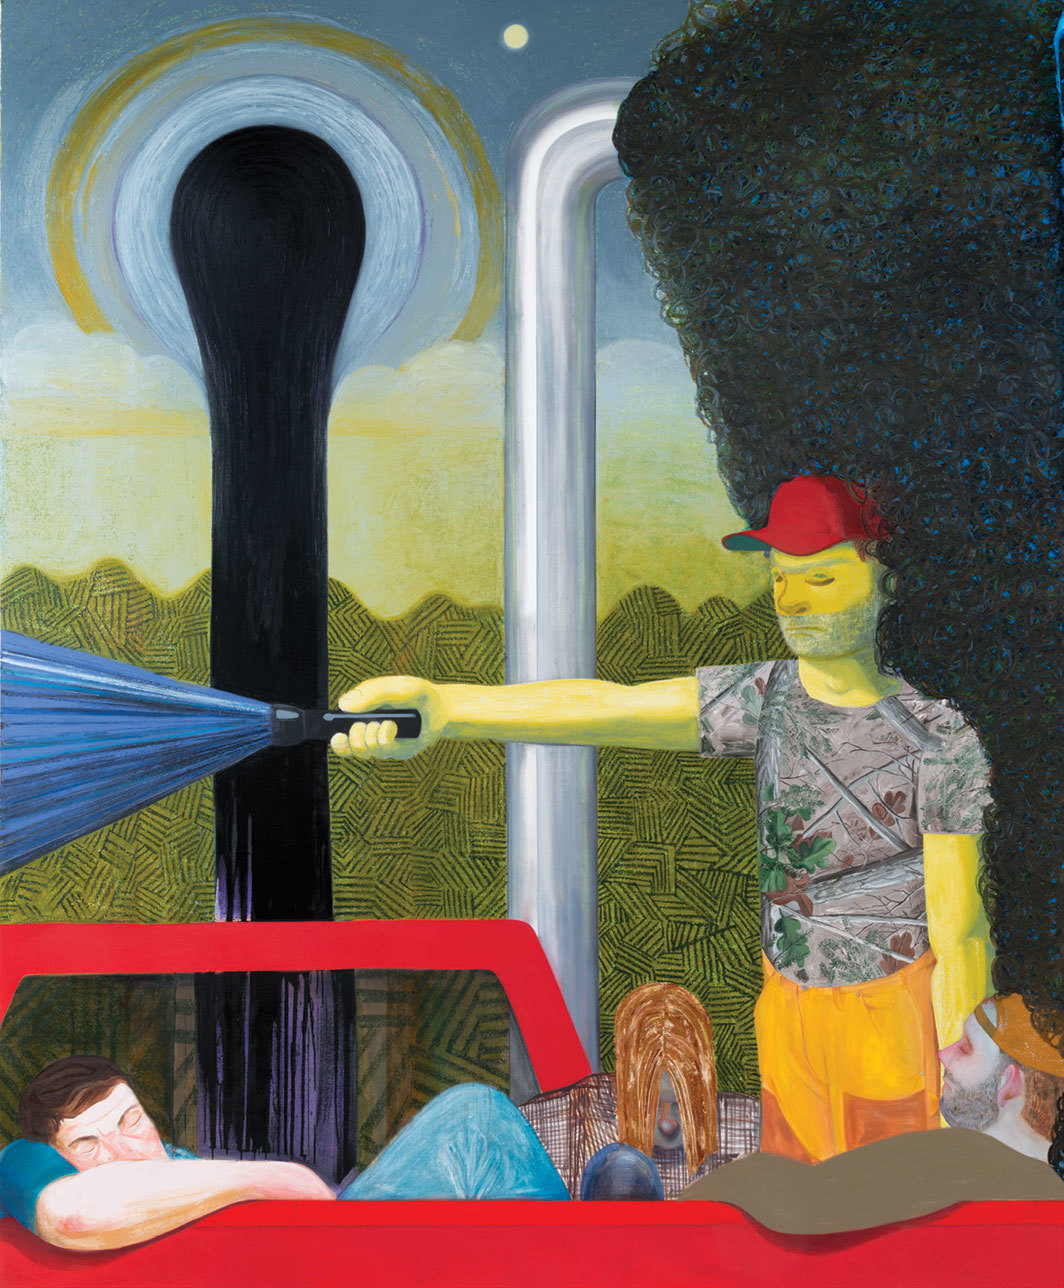 "Nicole Eisenman, Dark Light, 2017, oil on canvas, 10' 7 1⁄4"" × 8' 9""."